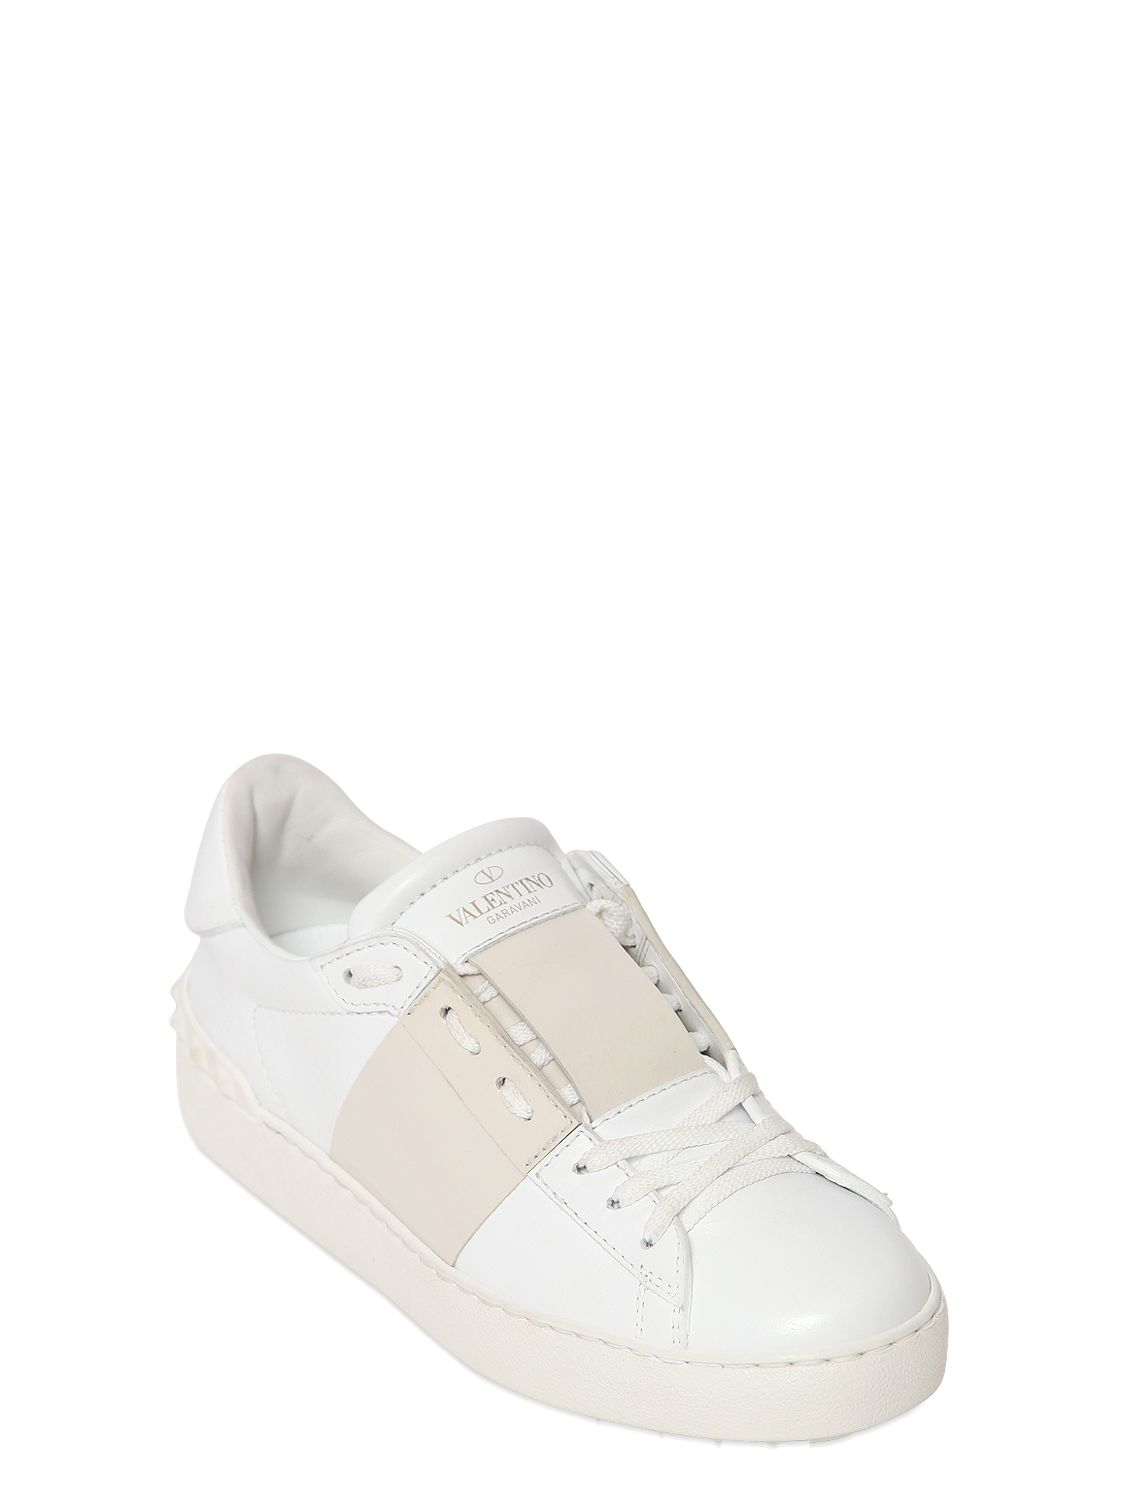 Valentino Open Leather Sneakers With Colored Band in White | Lyst